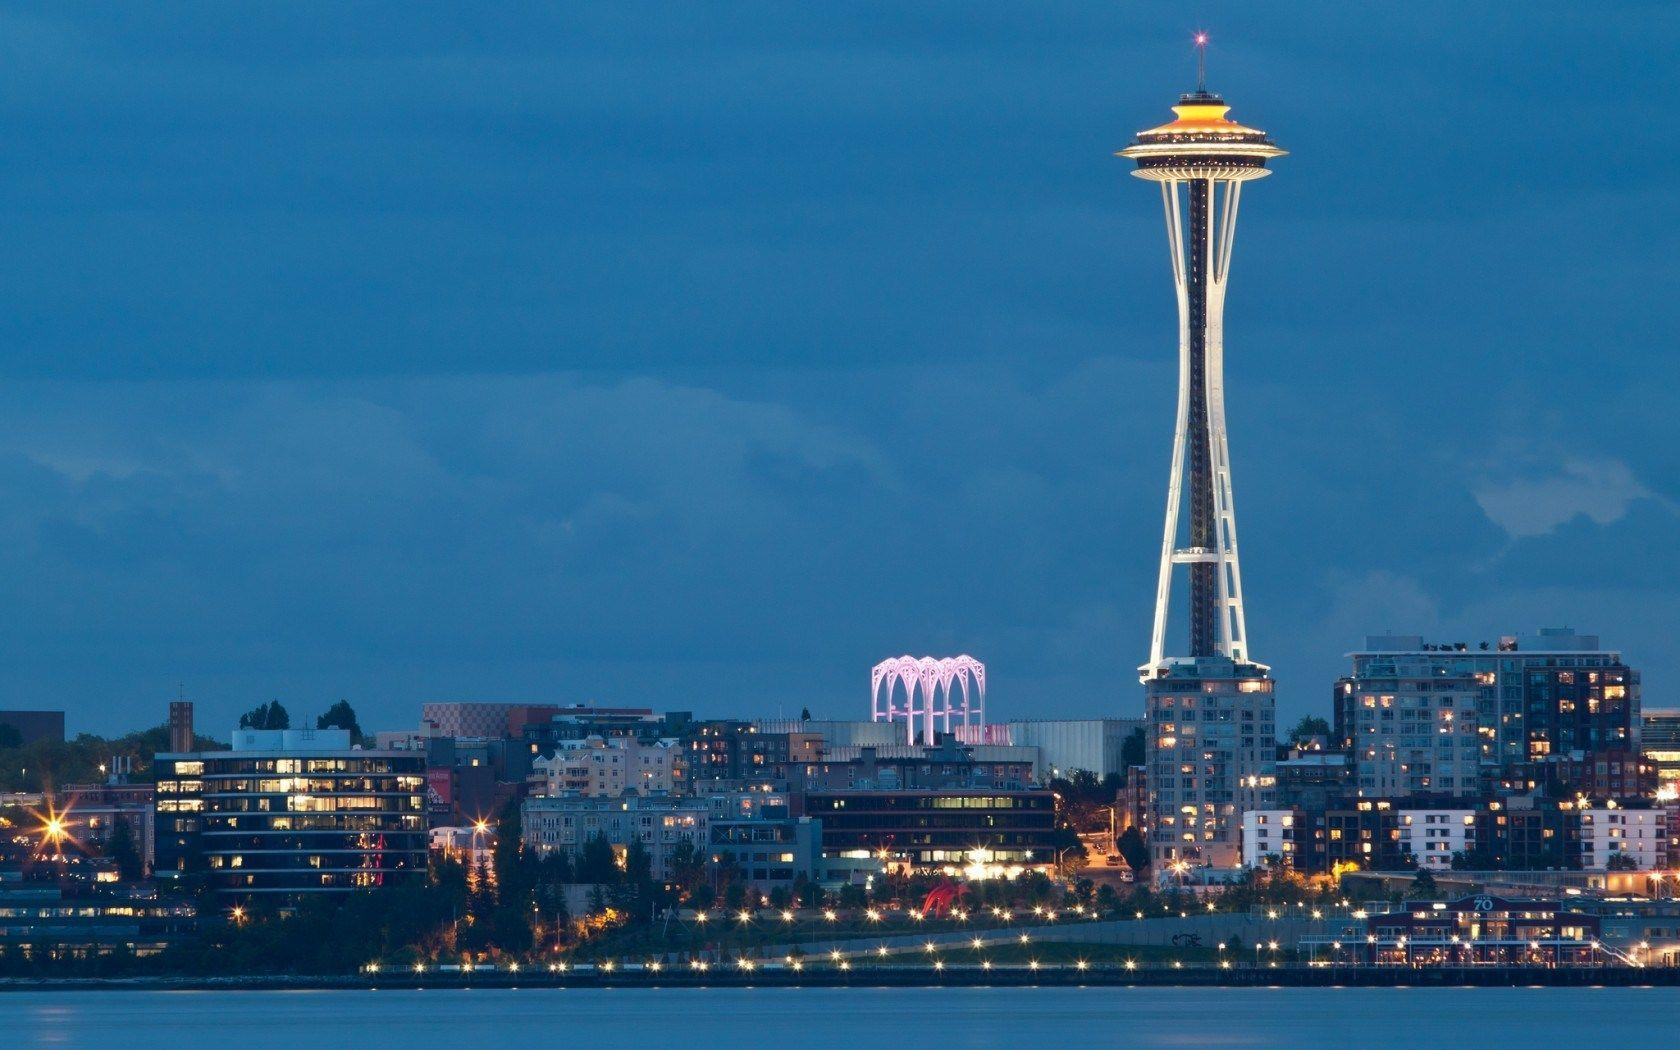 2014 Space Needle Tower In Seattle Washington USA | HD Wallpaper 2015